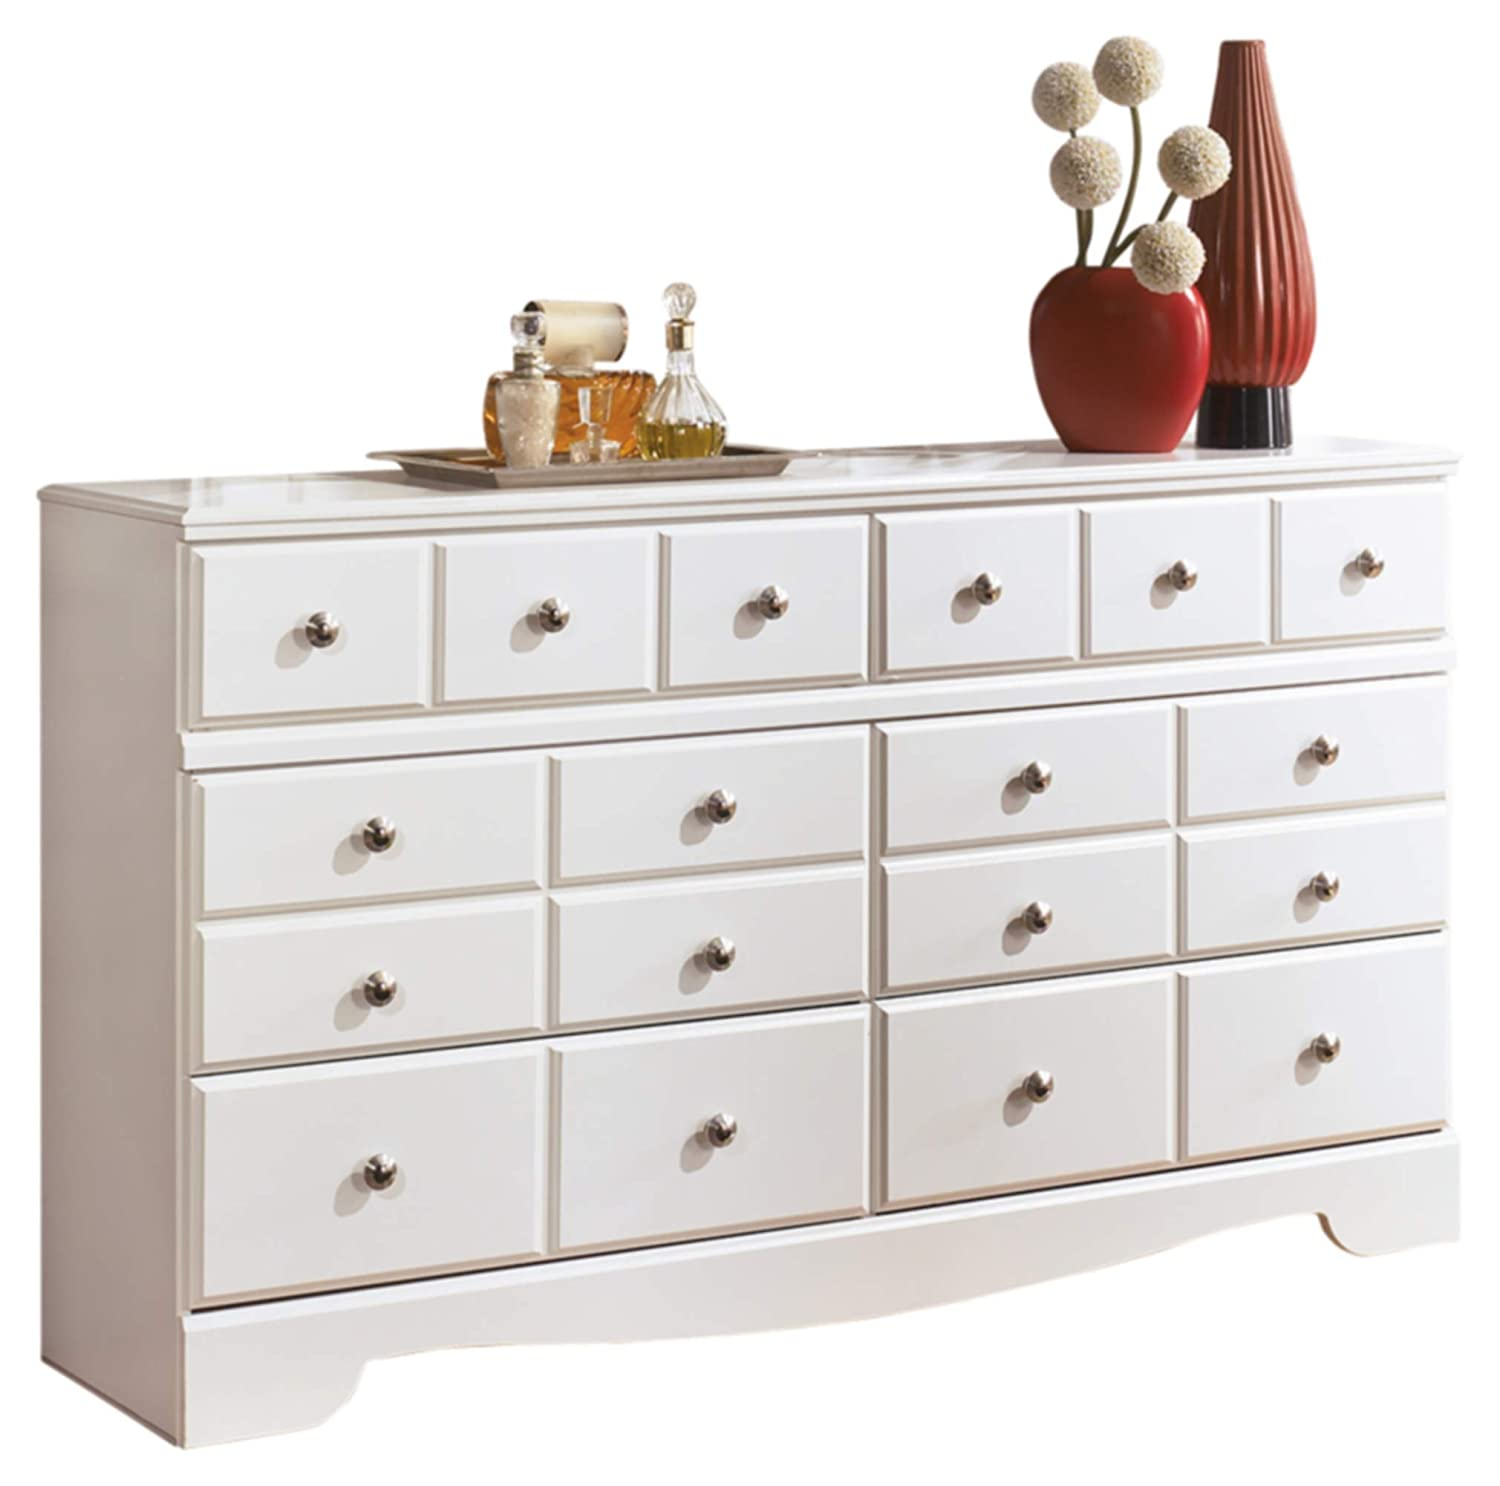 Amazon com ashley furniture signature design weeki dresser 6 drawers classic contemporary white kitchen dining